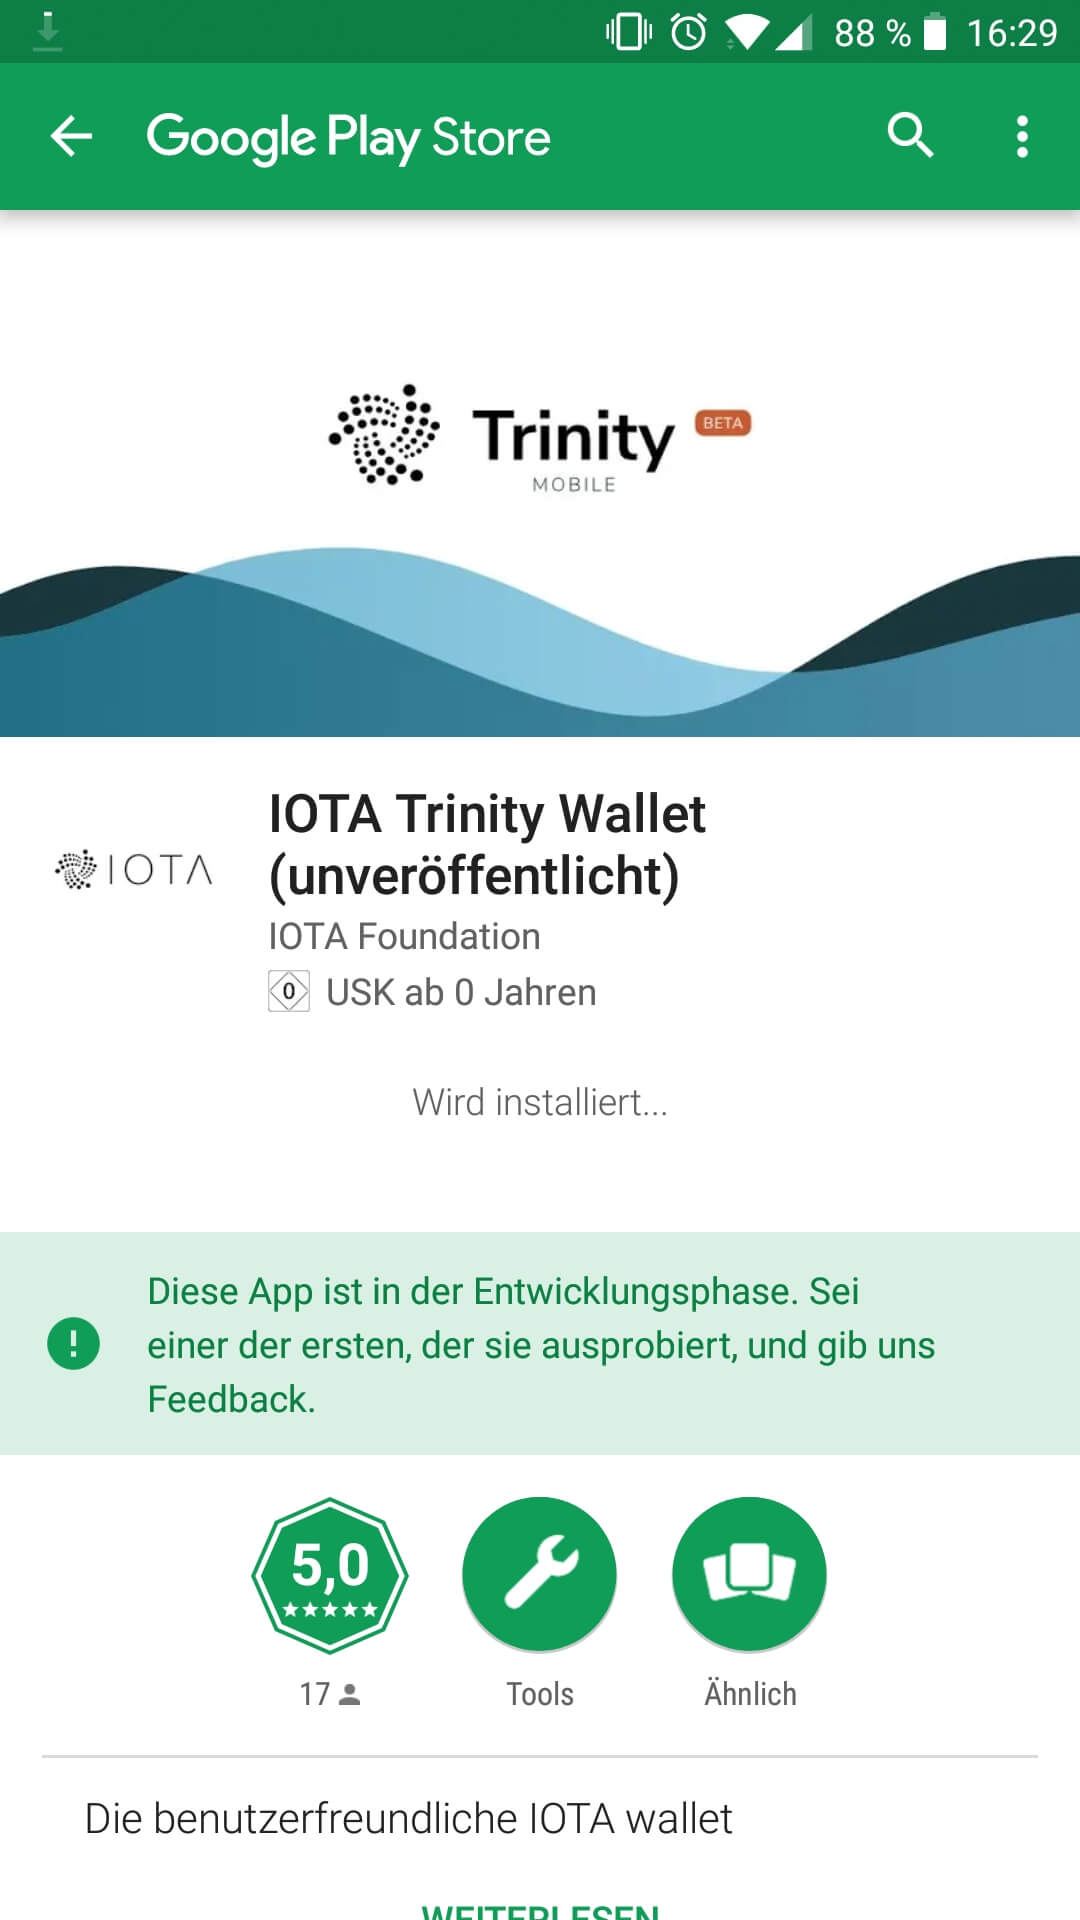 IOTA Trinity Wallet App Screenshot Google Download